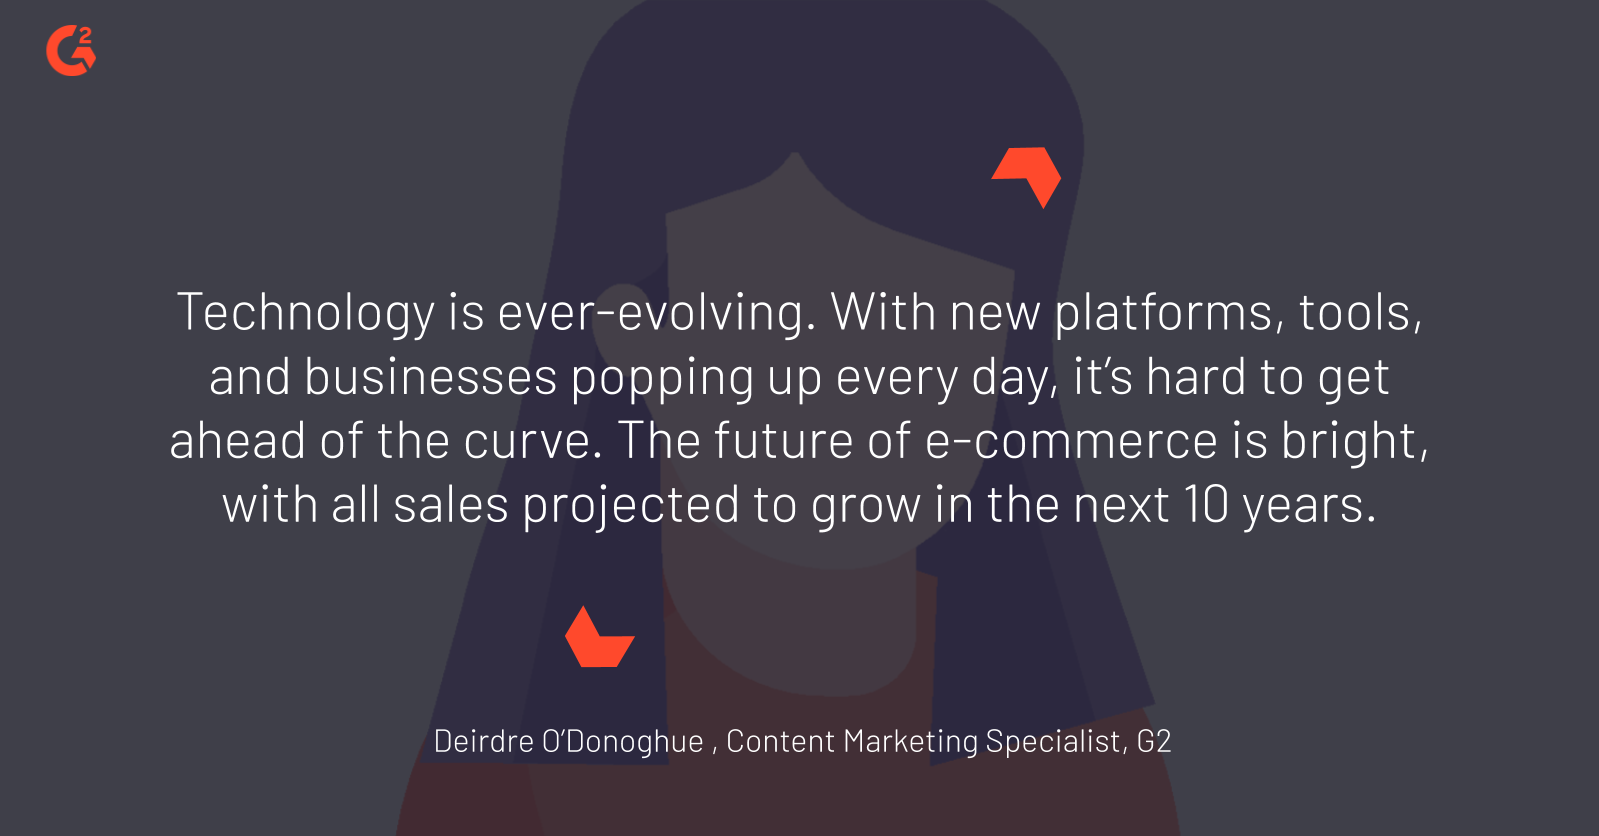 "quote by G2 senior content marketing specialist Deirdre O'Donoghue about the future of commerce: ""Technology is ever-evolving. With new platforms, tools, and businesses popping up every day, it's hard to get ahead of the curve. The future of e-commerce is bright, with all sales projected to grow in the next 10 years."""